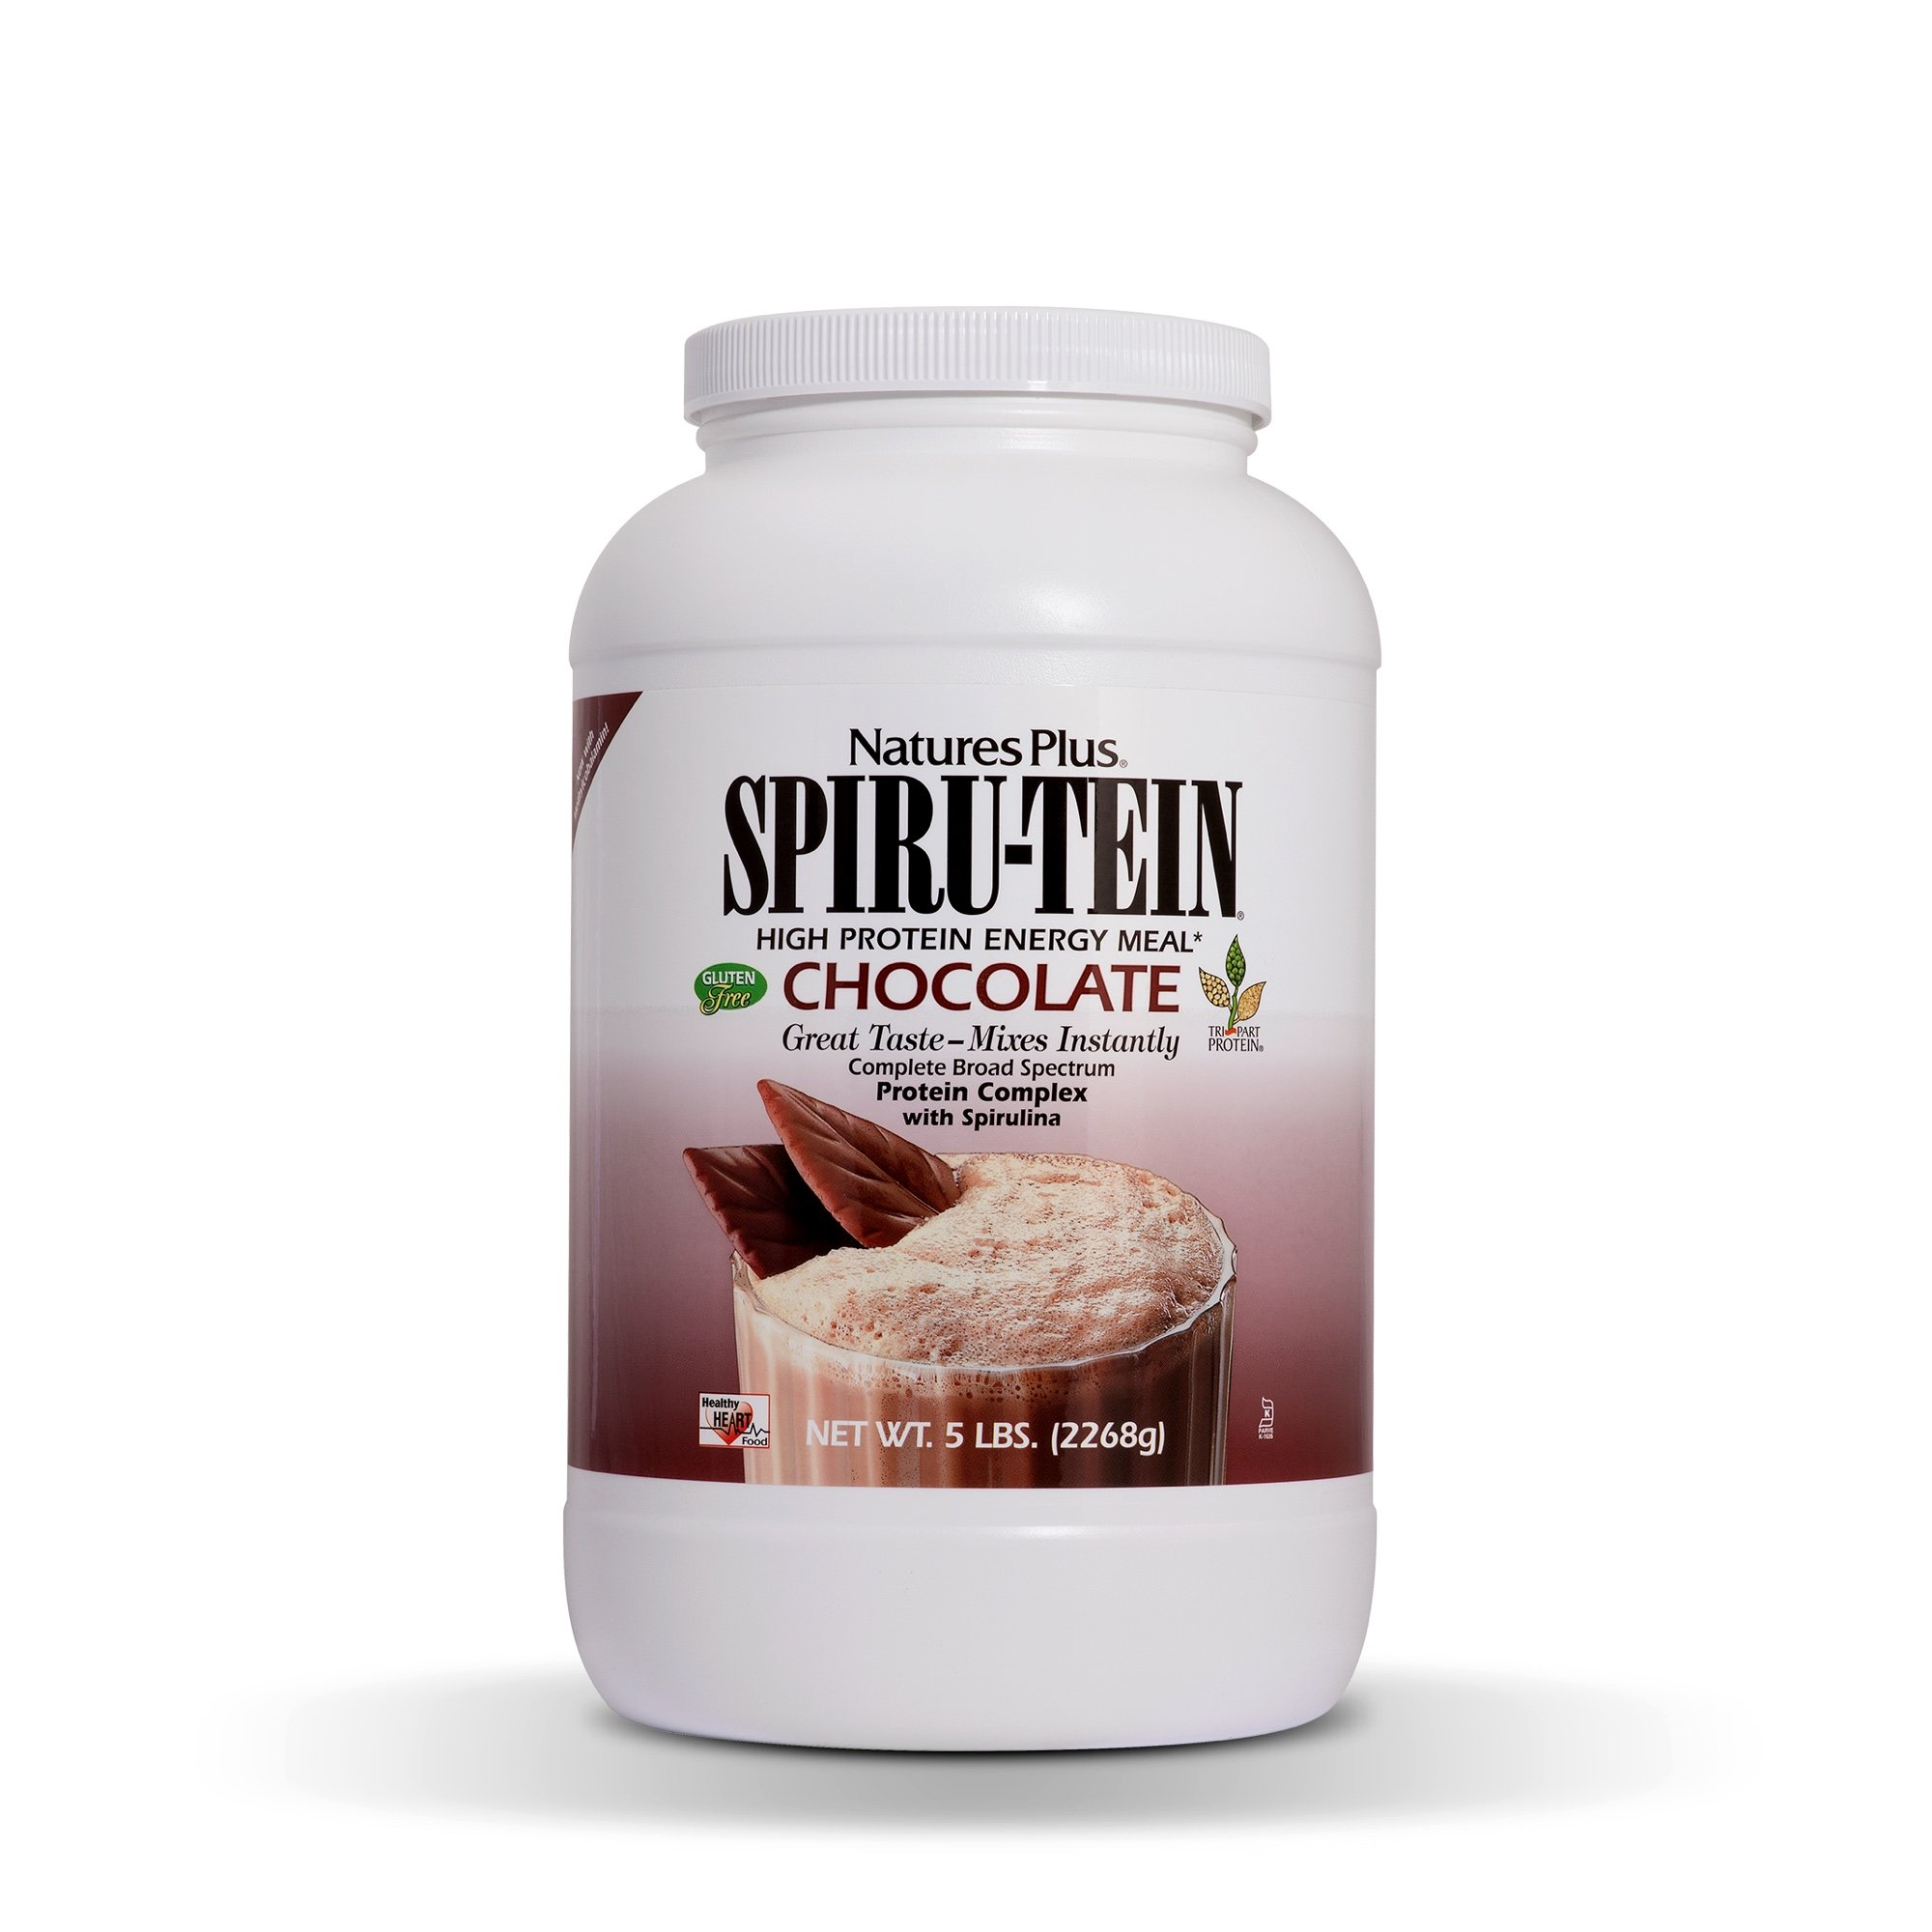 NaturesPlus SPIRU-TEIN Shake - Chocolate - 5 lbs, Spirulina Protein Powder - Plant Based Meal Replacement, Vitamins & Minerals For Energy - Vegetarian, Gluten-Free - 81 Servings by Nature's Plus